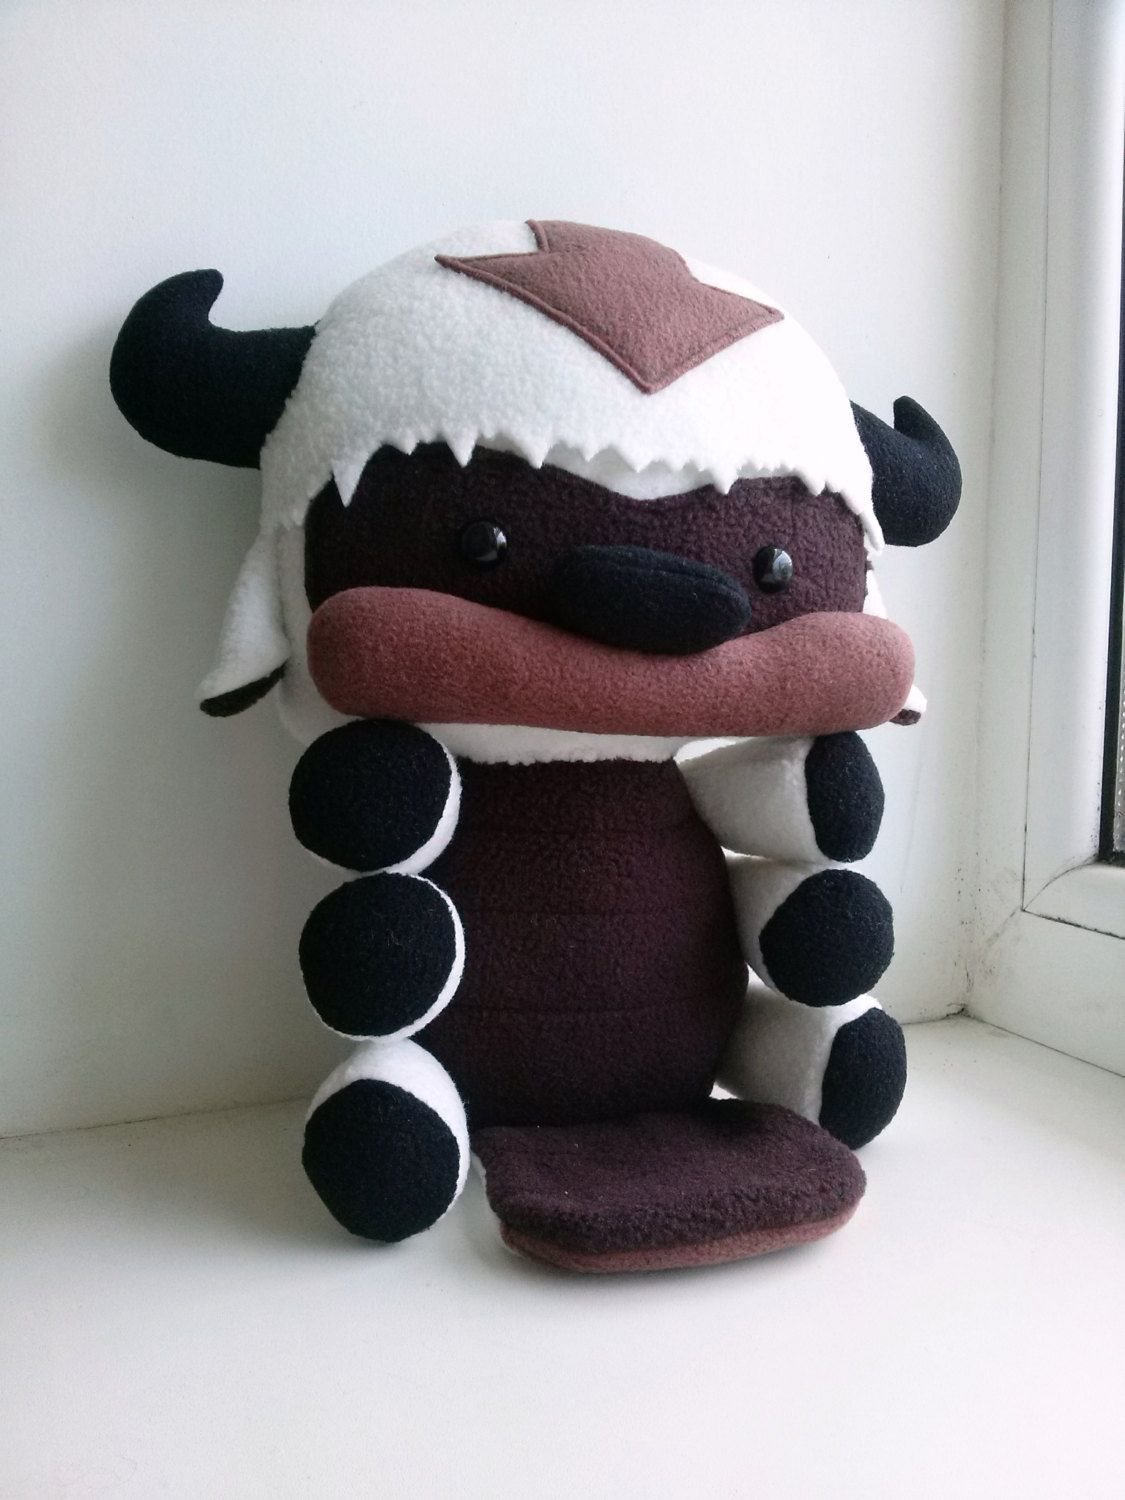 Baby Appa plush The Legend of Korra Stuffed Flying Bison